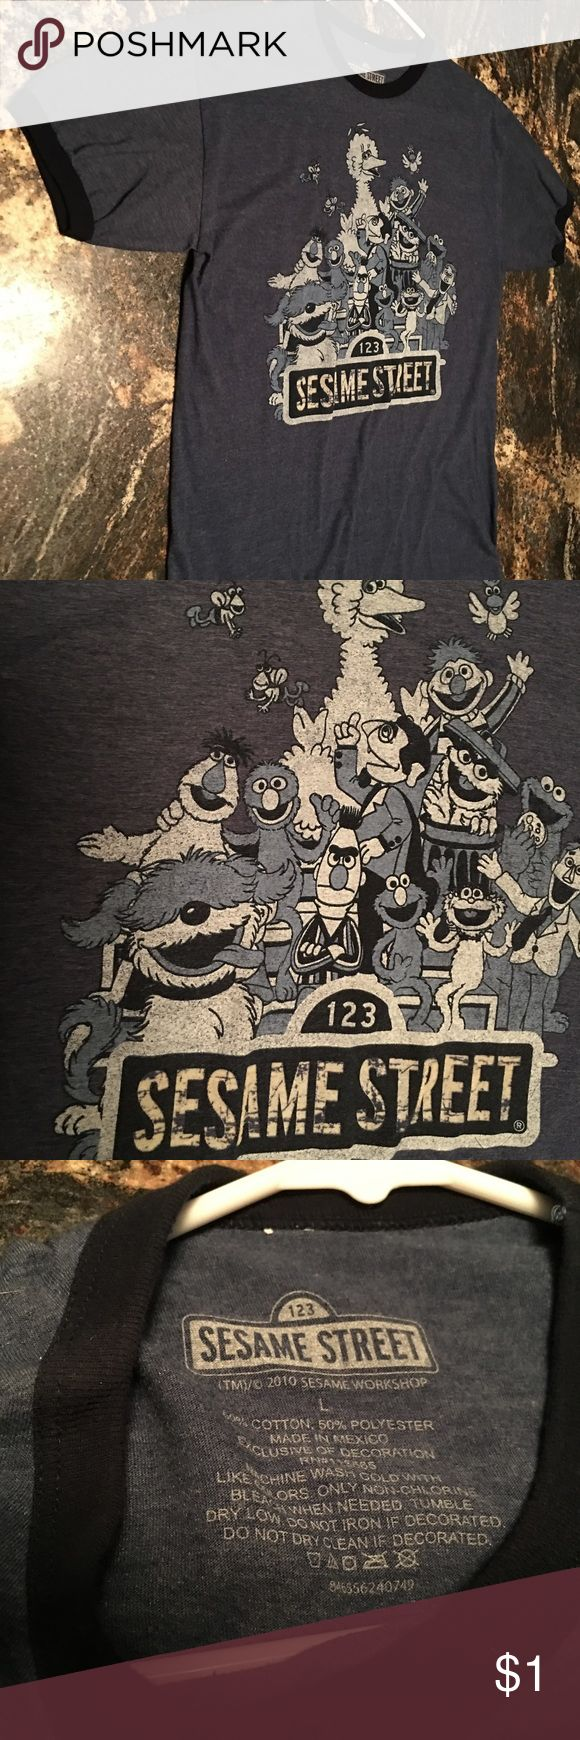 Sesame Street T-shirt Size L Soft Tee Big Bird Sesame Street T-shirt Size L Soft Tee Big Bird Oscar the Grouch Elmo Bert Ernie with no rips or tears. Please see pictures as they are part of the description. Sesame Street Shirts Tees - Short Sleeve